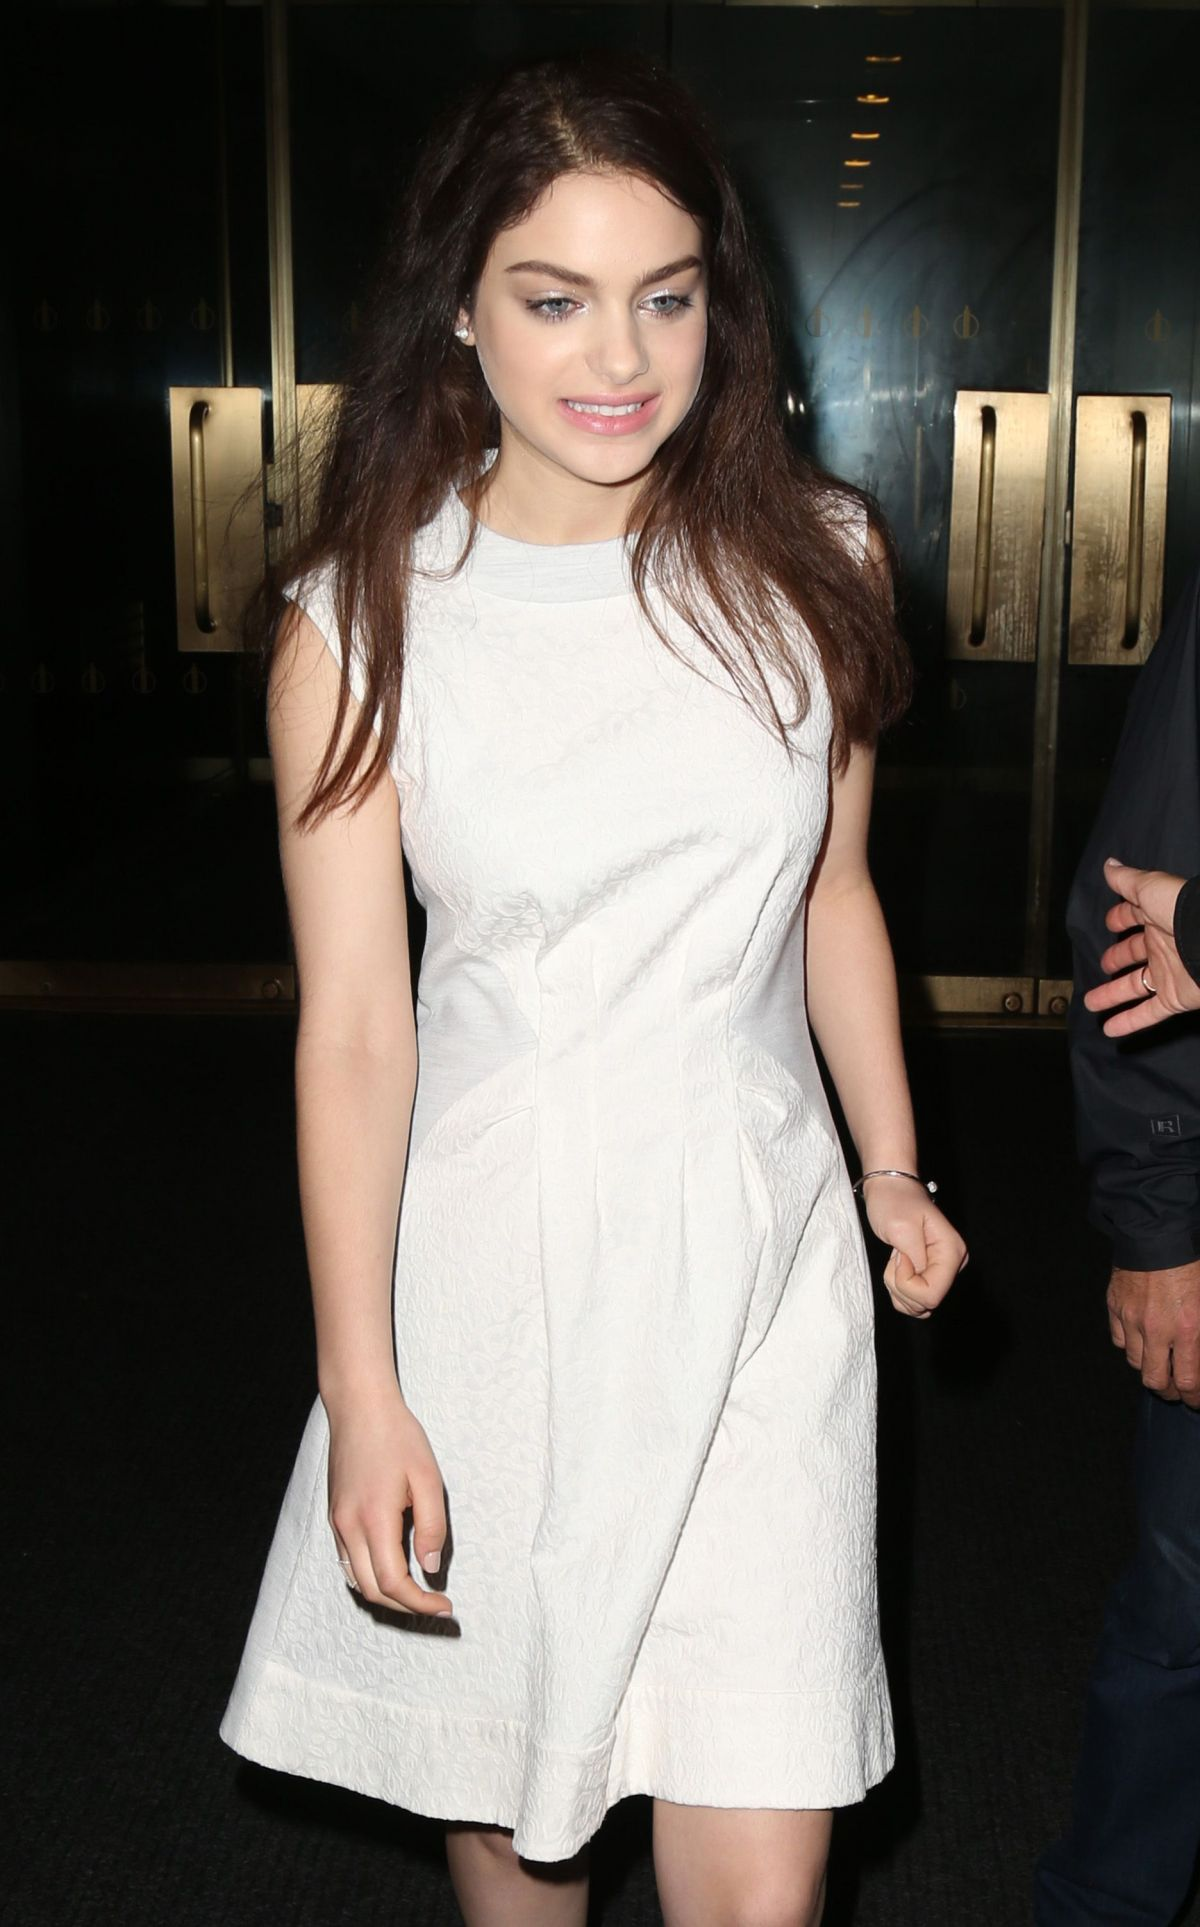 Odeya Rush Leaving The Today Show In NYC